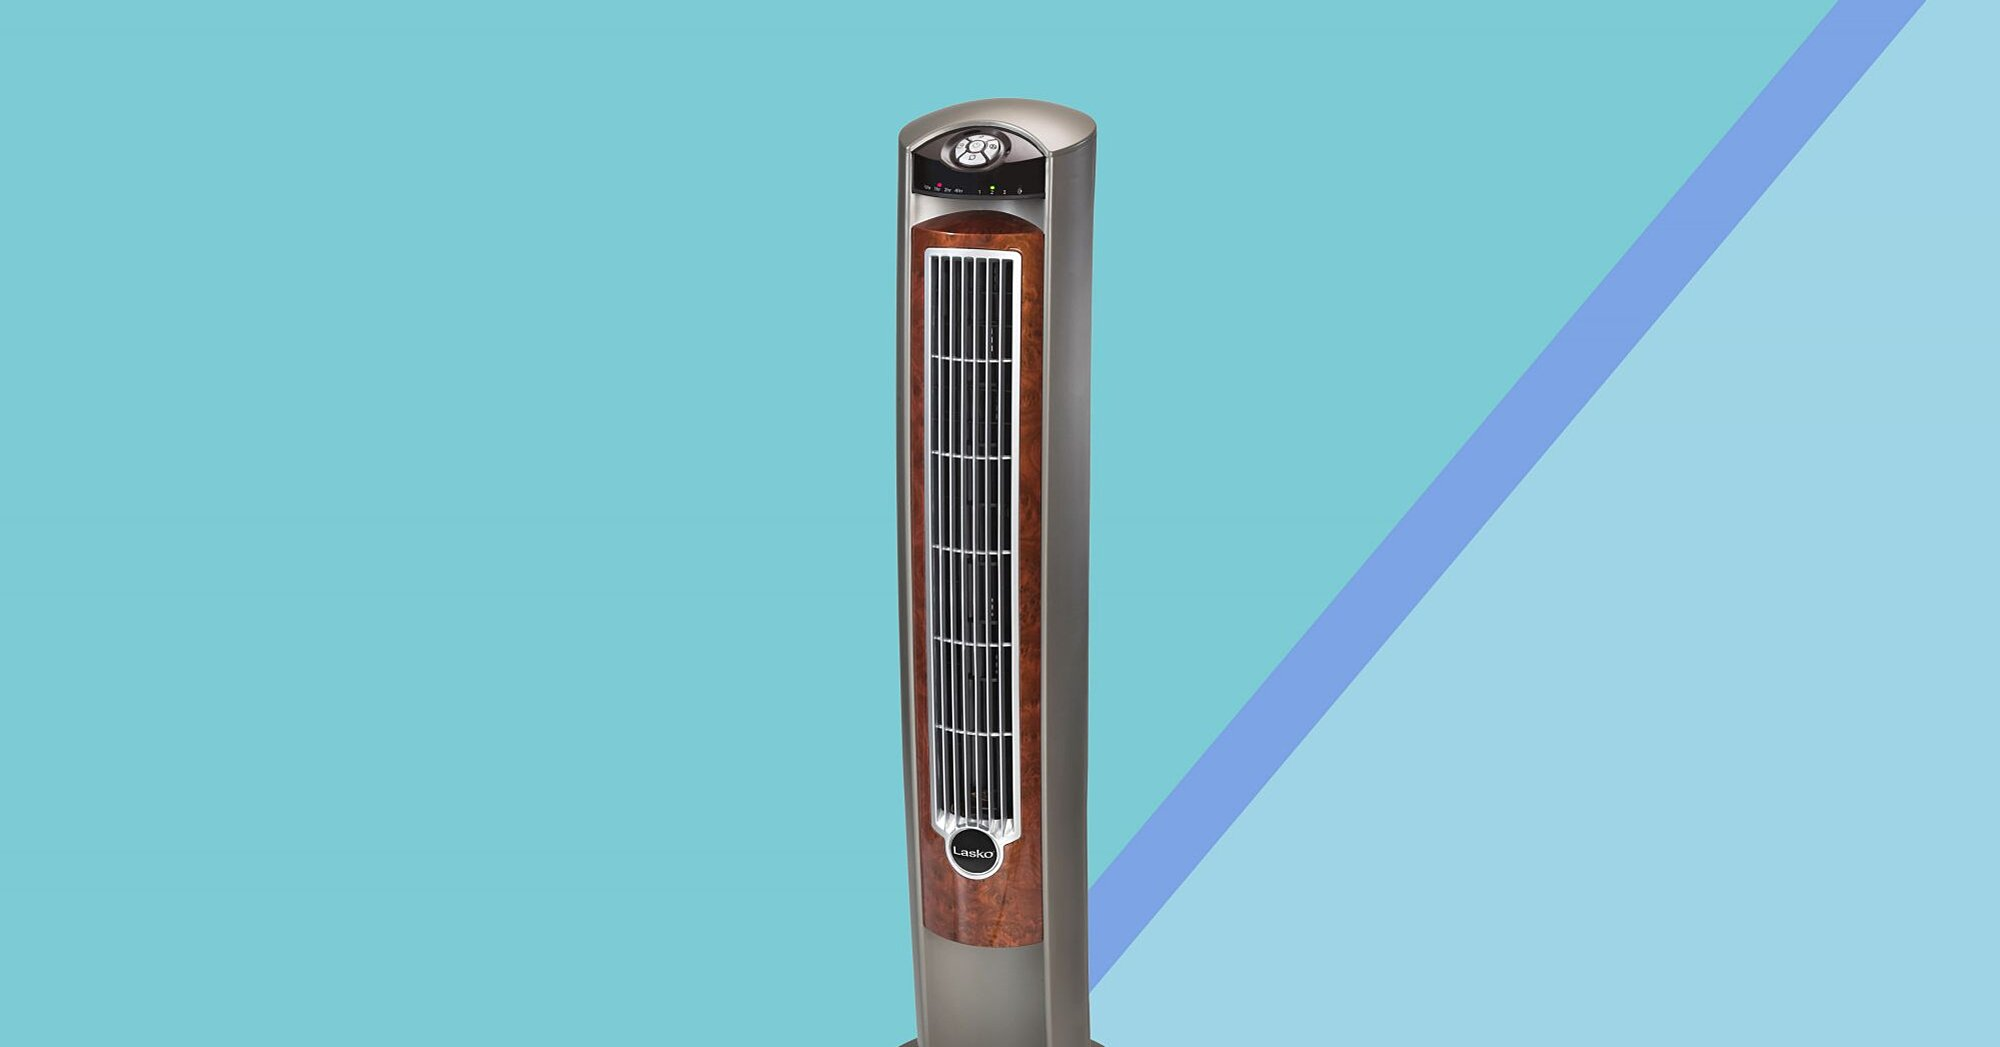 I Tested Amazon's Best-Selling Tower Fan and Now I Get Why It's So Popular